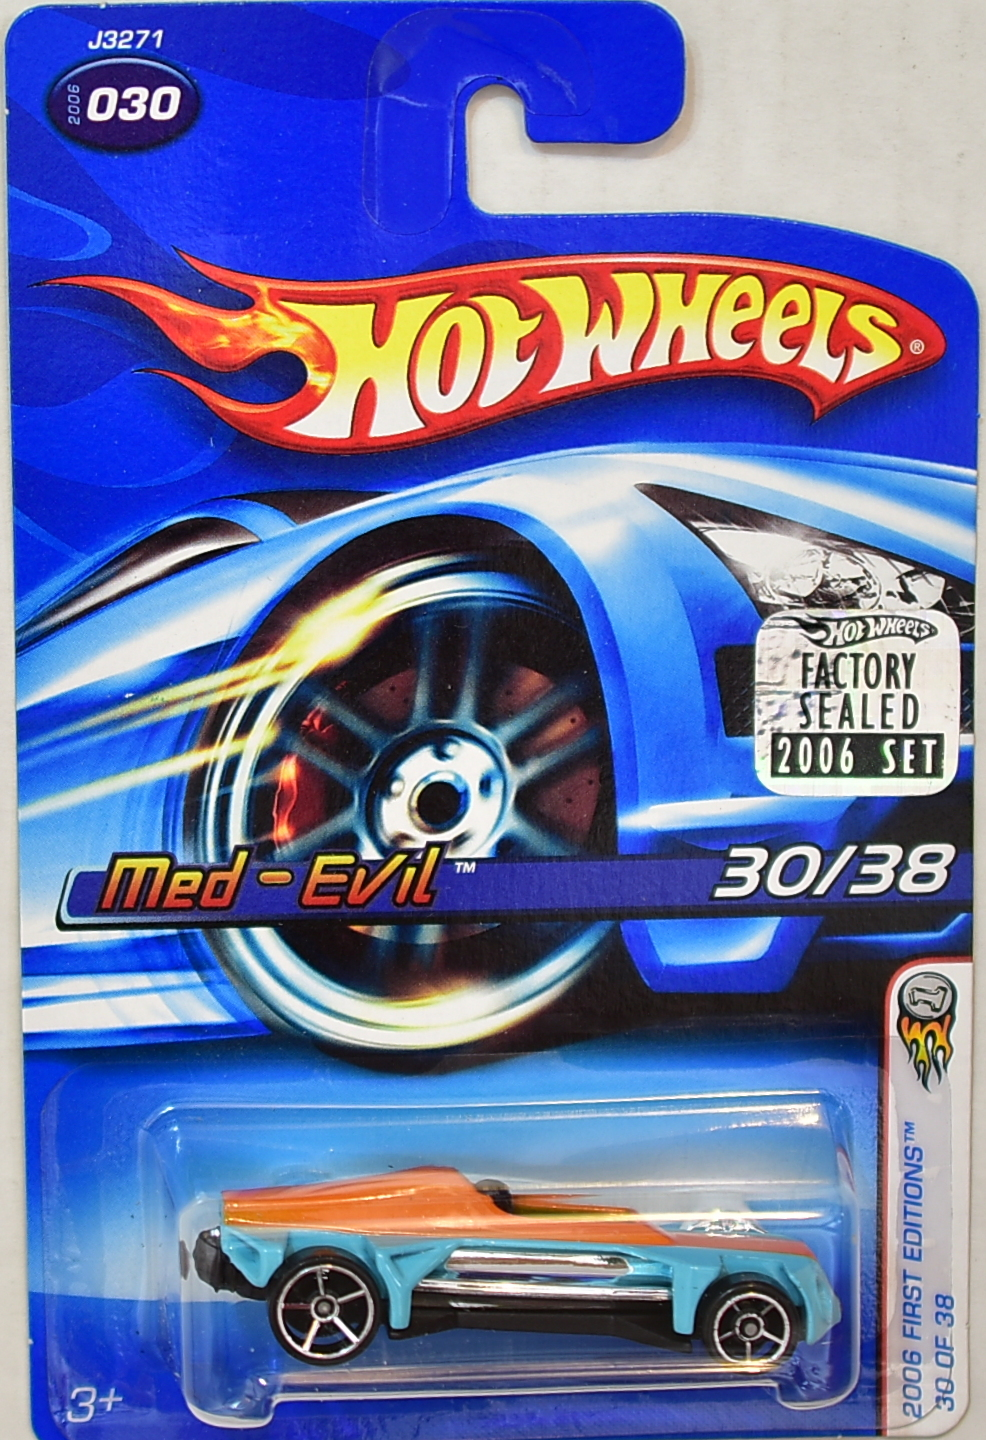 HOT WHEELS 2006 FIRST EDITIONS MED - EVIL #030 FACTORY SEALED